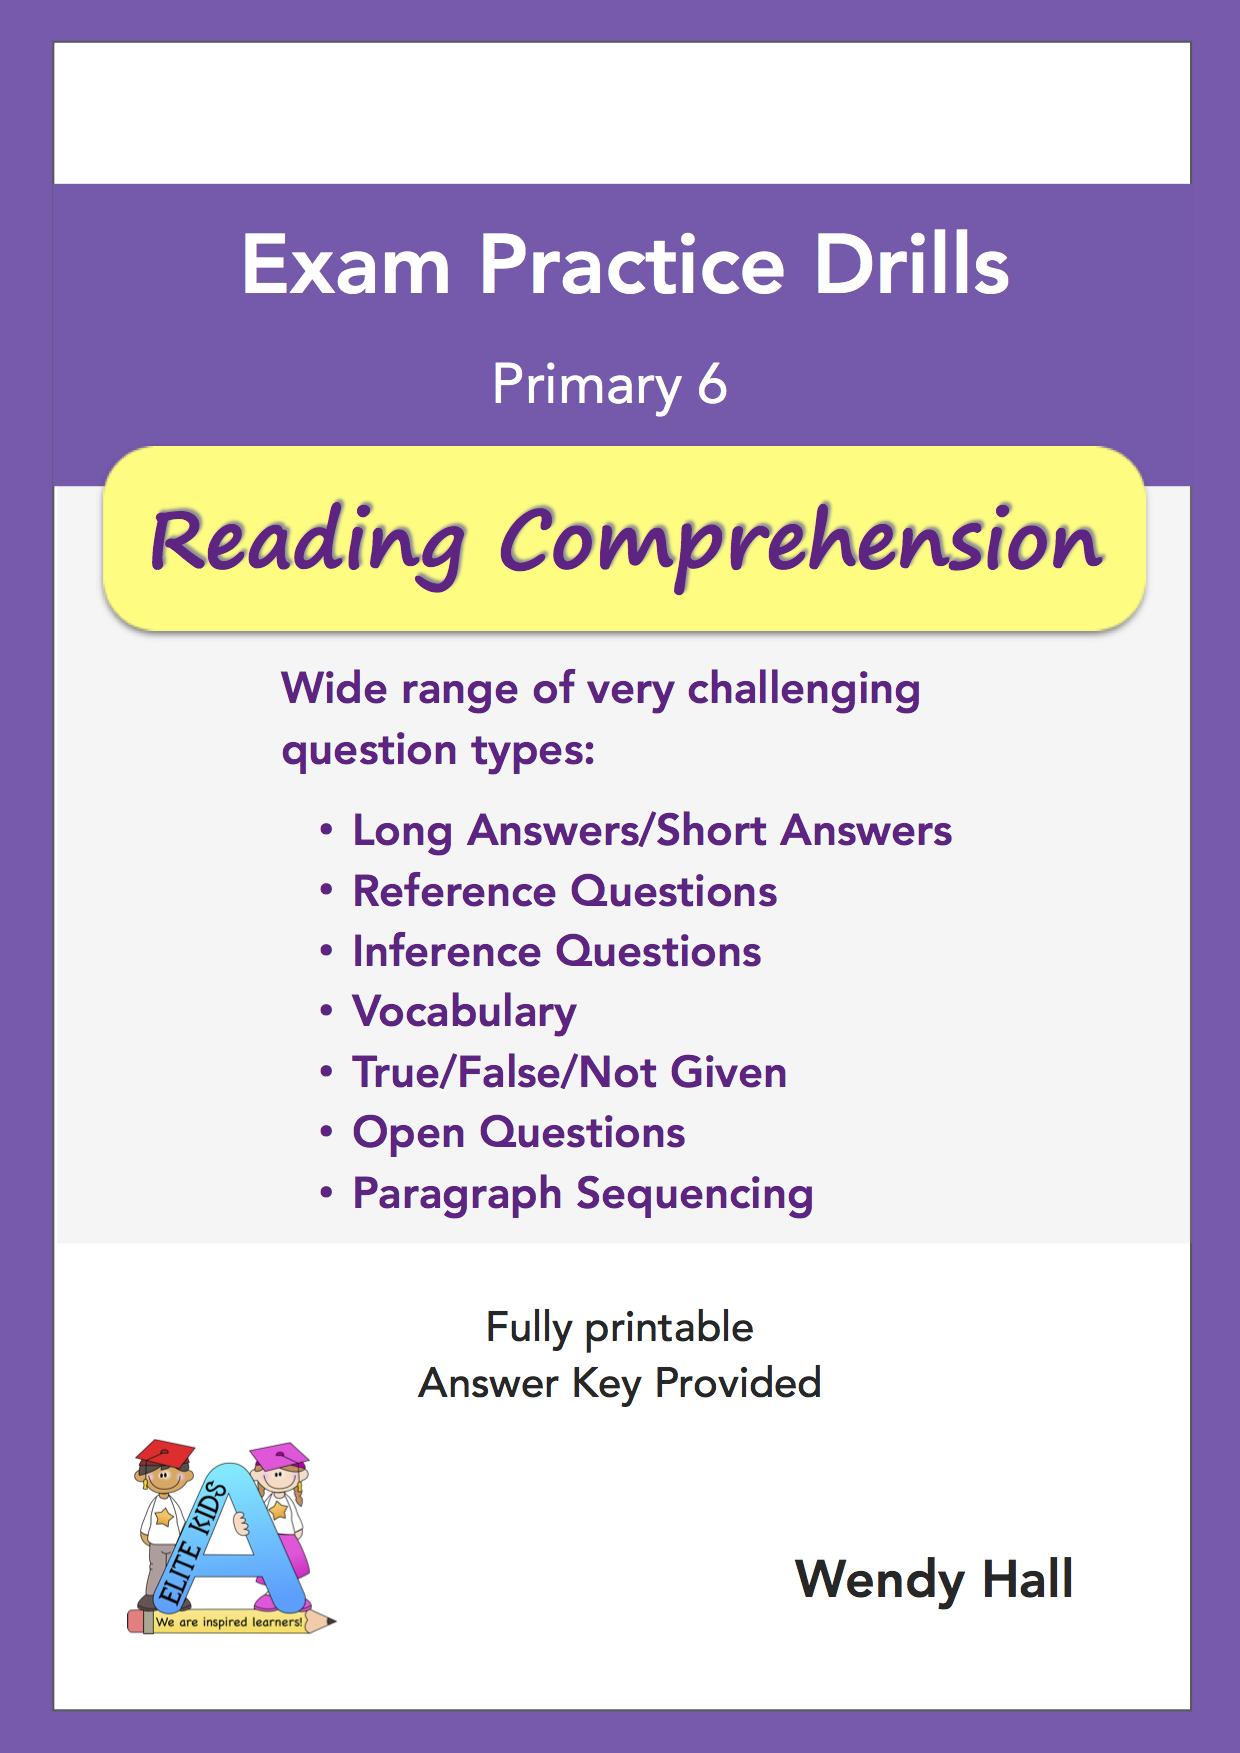 Elite Kids | Exam Practice Drills - Reading Comprehension- Primary 6